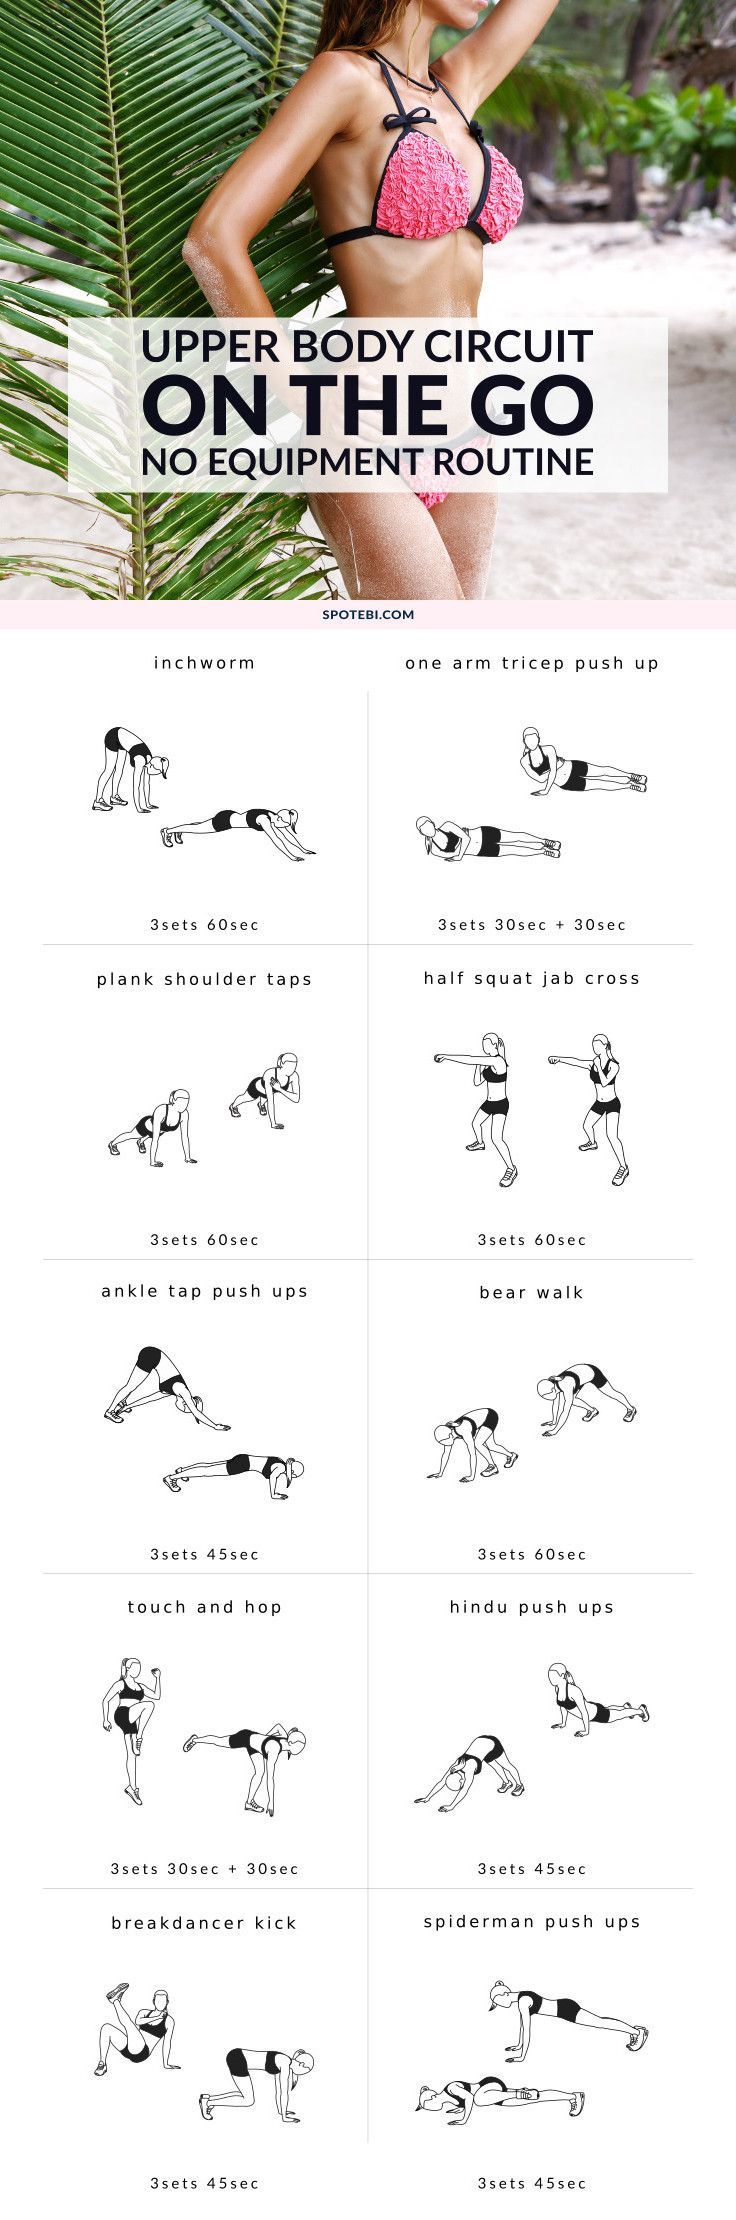 Sculpt your back, chest, shoulders, and arms and boost your weight loss with these 10 upper body bodyweight exercises for women. Try this on-the-go workout next time you're traveling or on vacation. http://www.spotebi.com/workout-routines/upper-body-bodyweight-exercises/